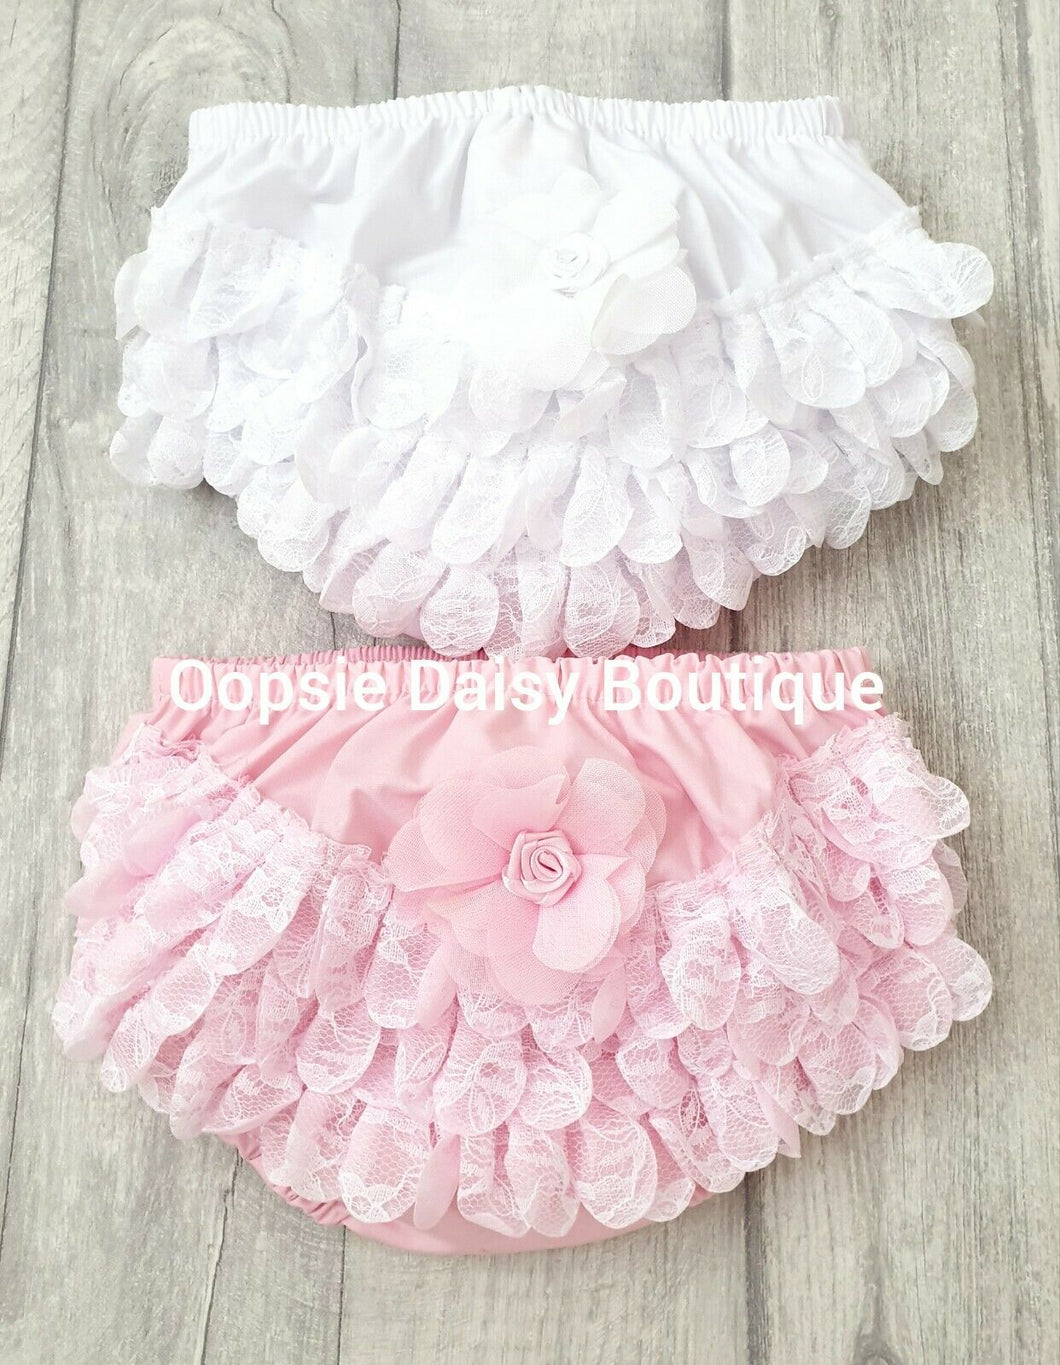 Baby Frilly Knickers Pants Pink & White - Oopsie Daisy Baby Boutique